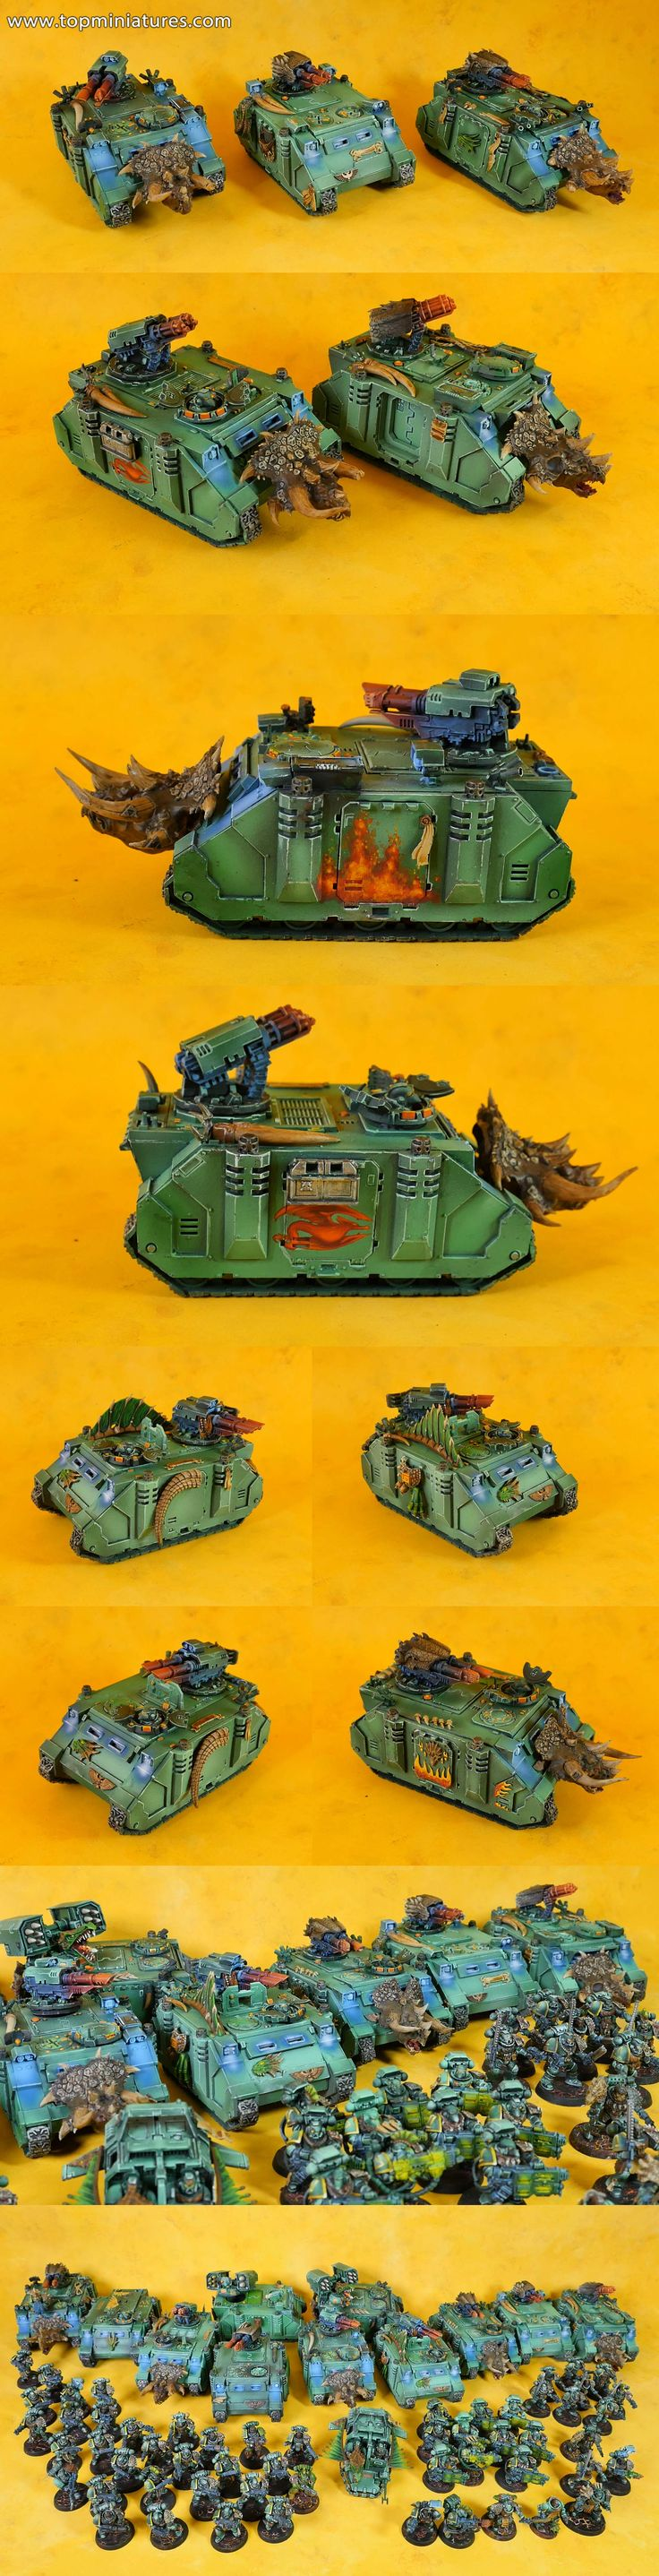 Warhammer 40k salamanders space marines razorback converted & with freehands